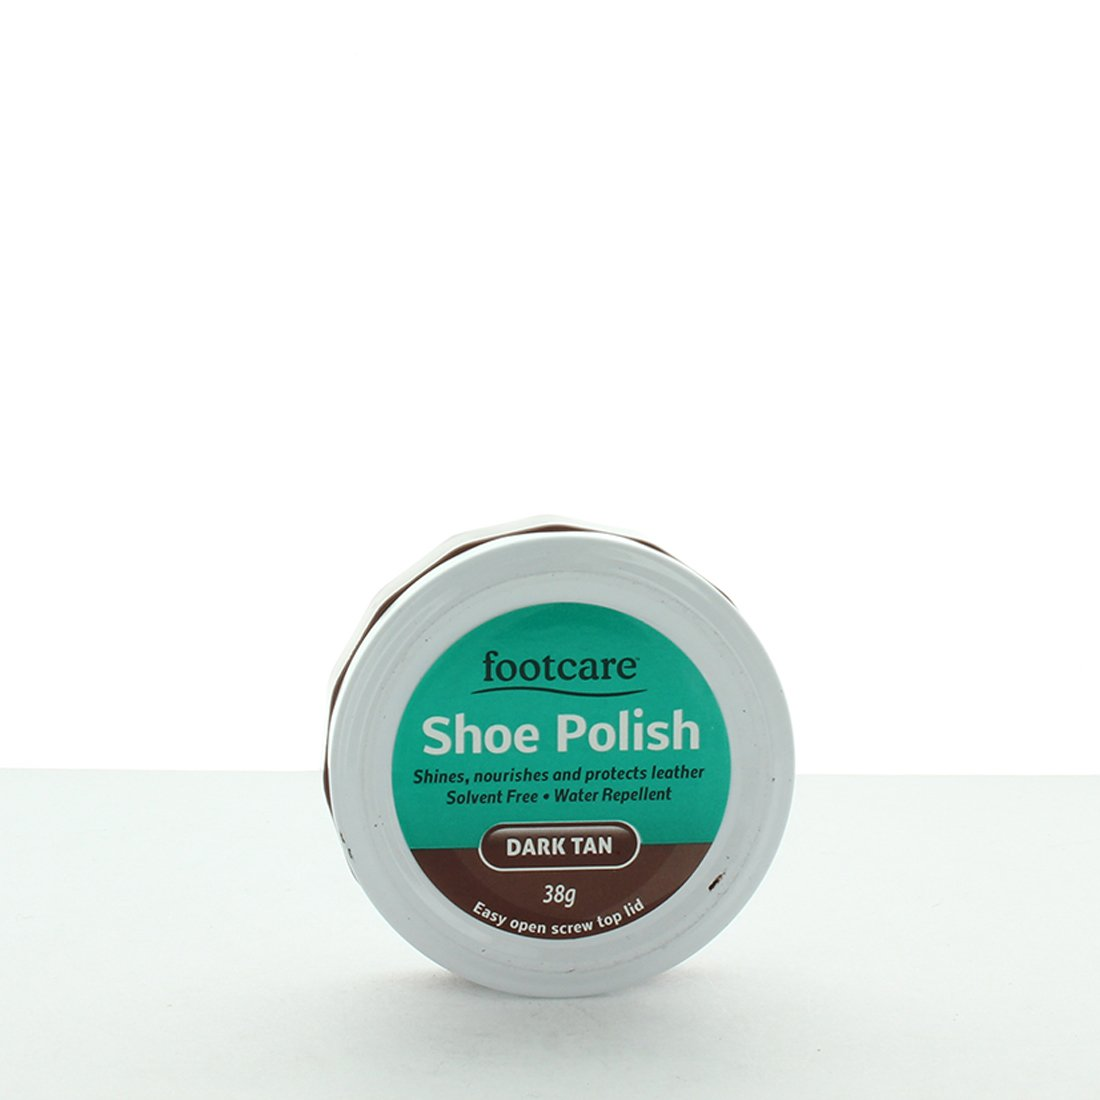 DARK TAN POLISH by FOOTCARE - iShoes - Accessories, Accessories: Shoe Care - FOOTWEAR-FOOTWEAR